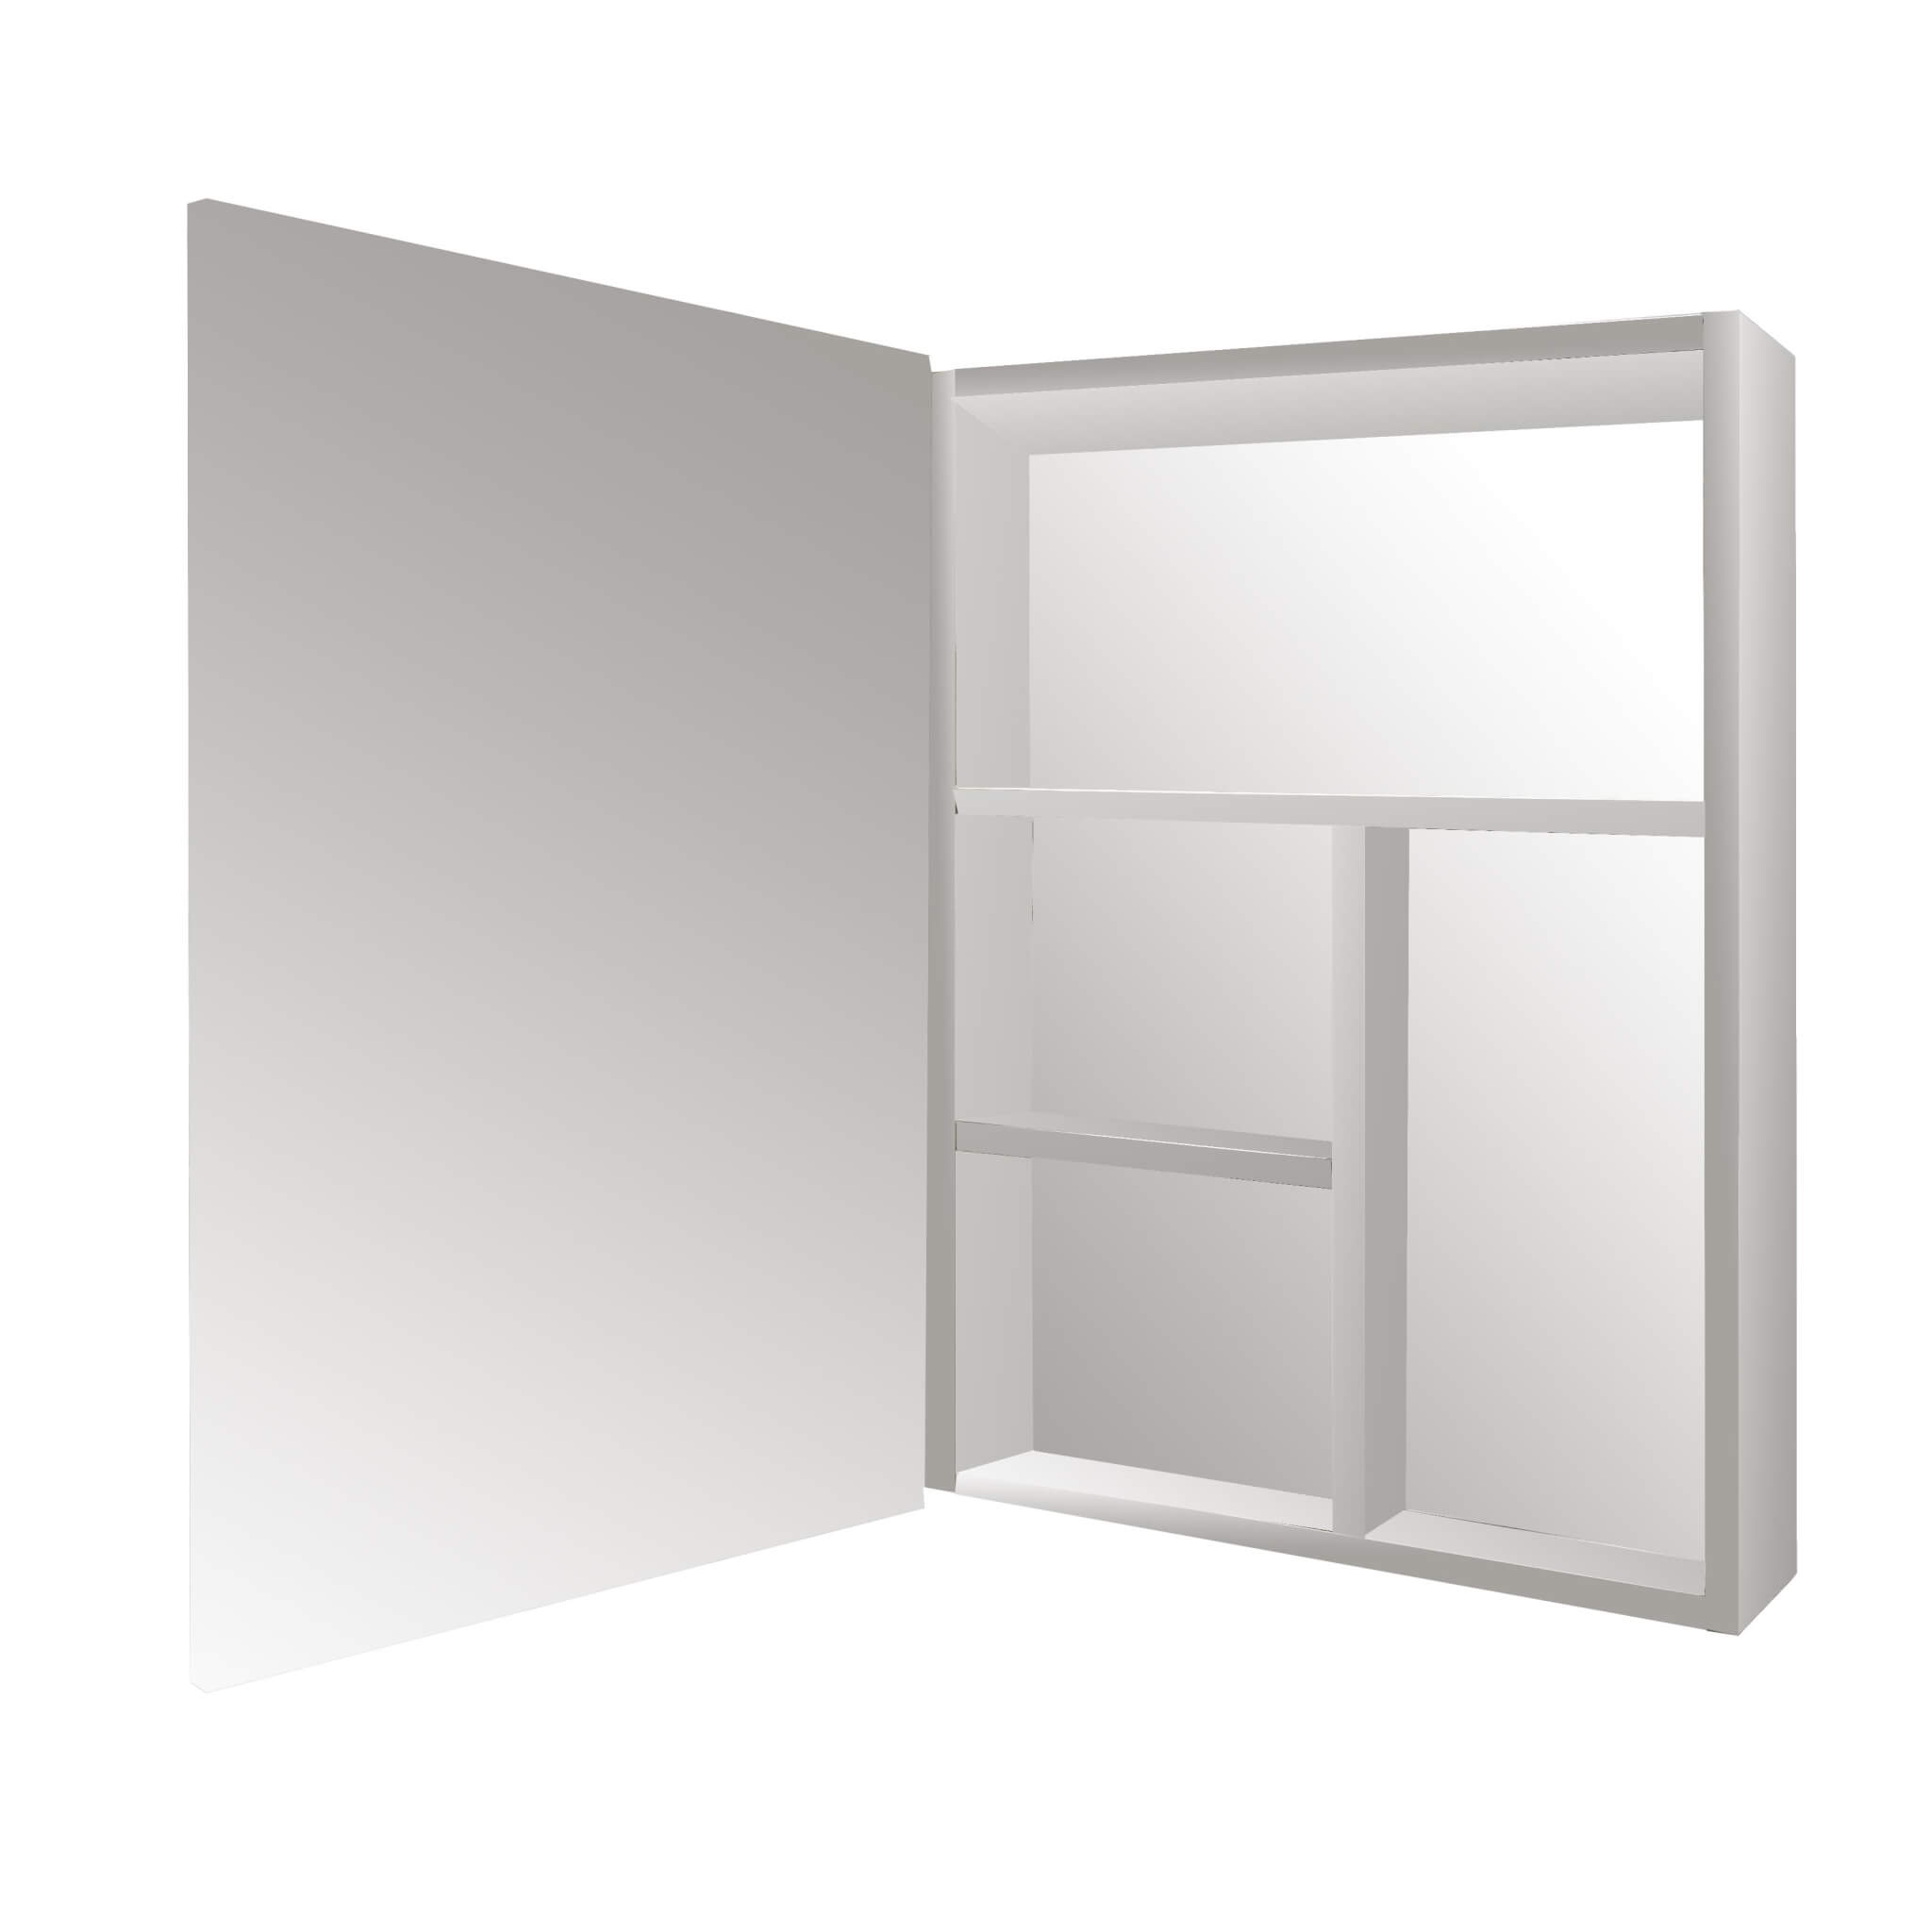 AF Mirror Cabinet Stainless Steel Swing 40X60